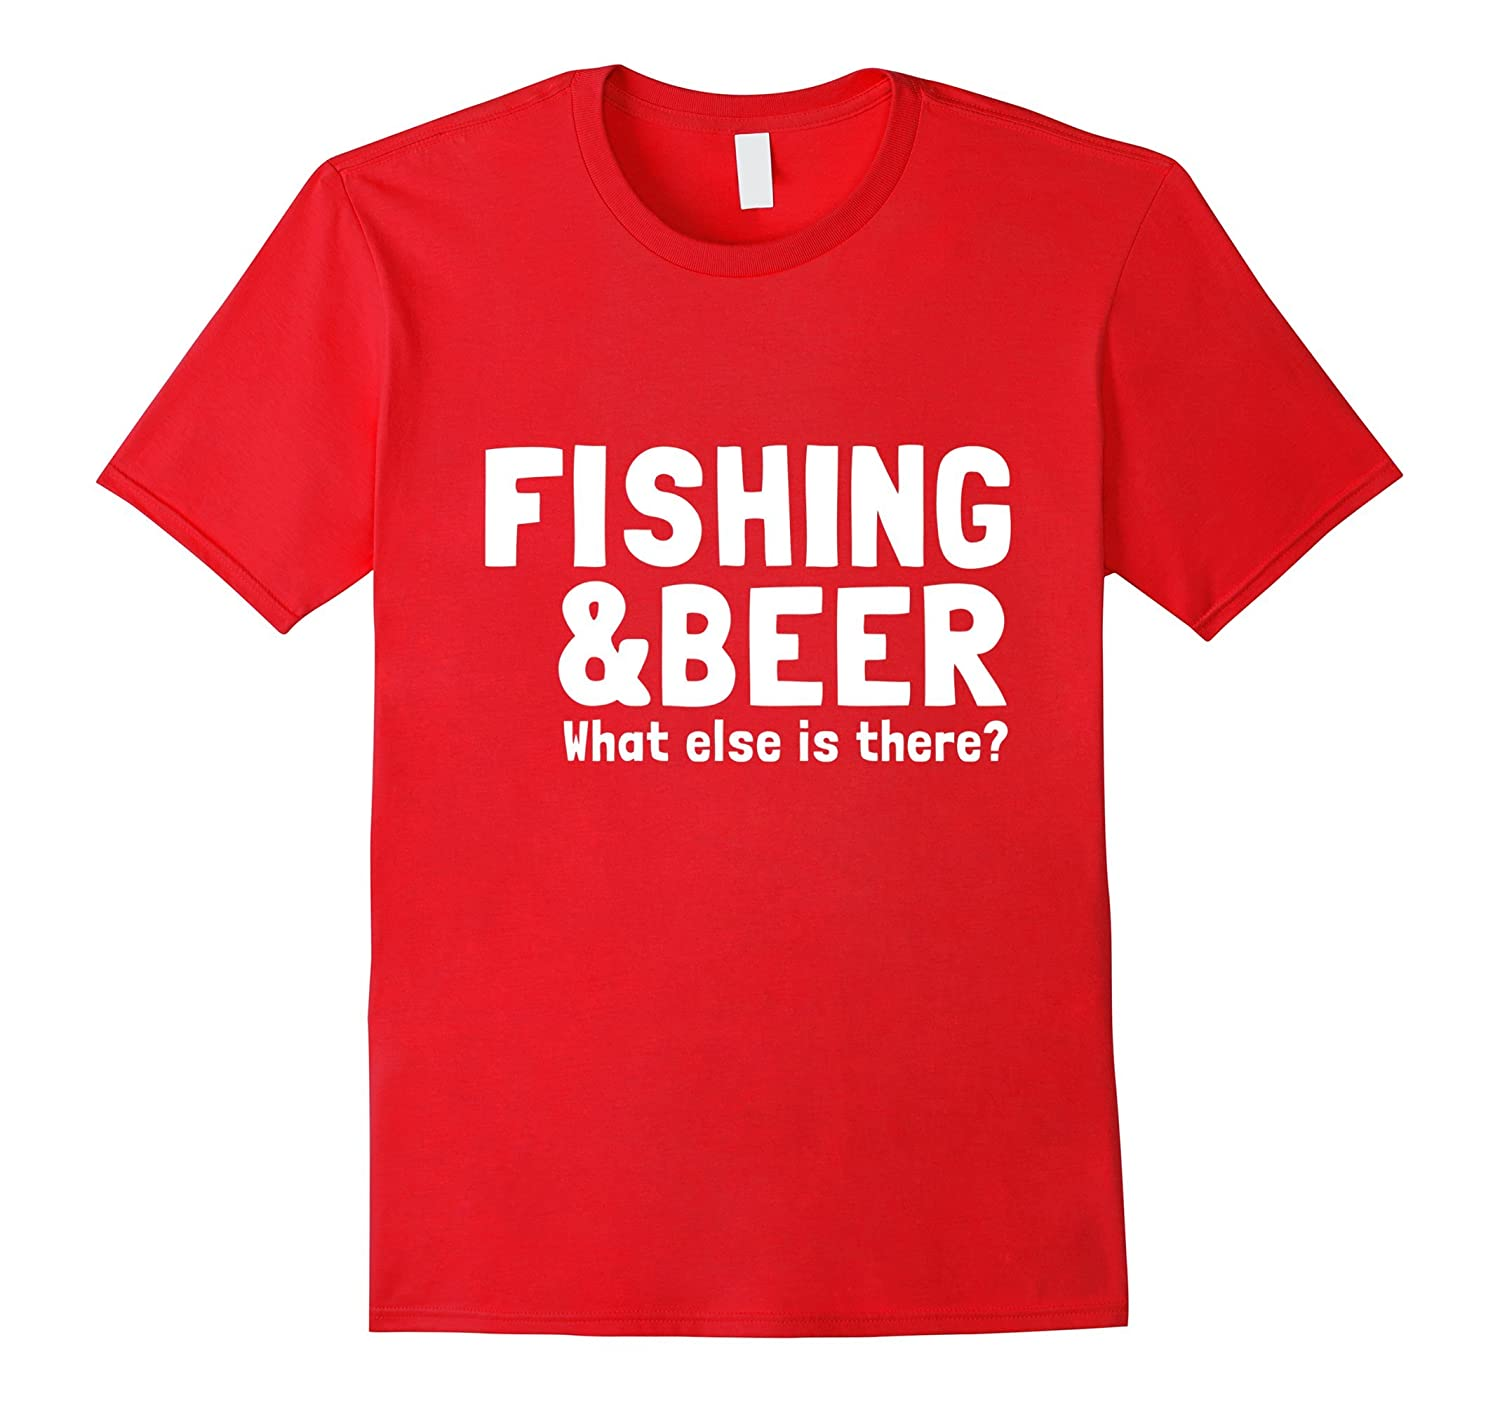 Funny fishing shirt goatstee for Funny fishing shirts